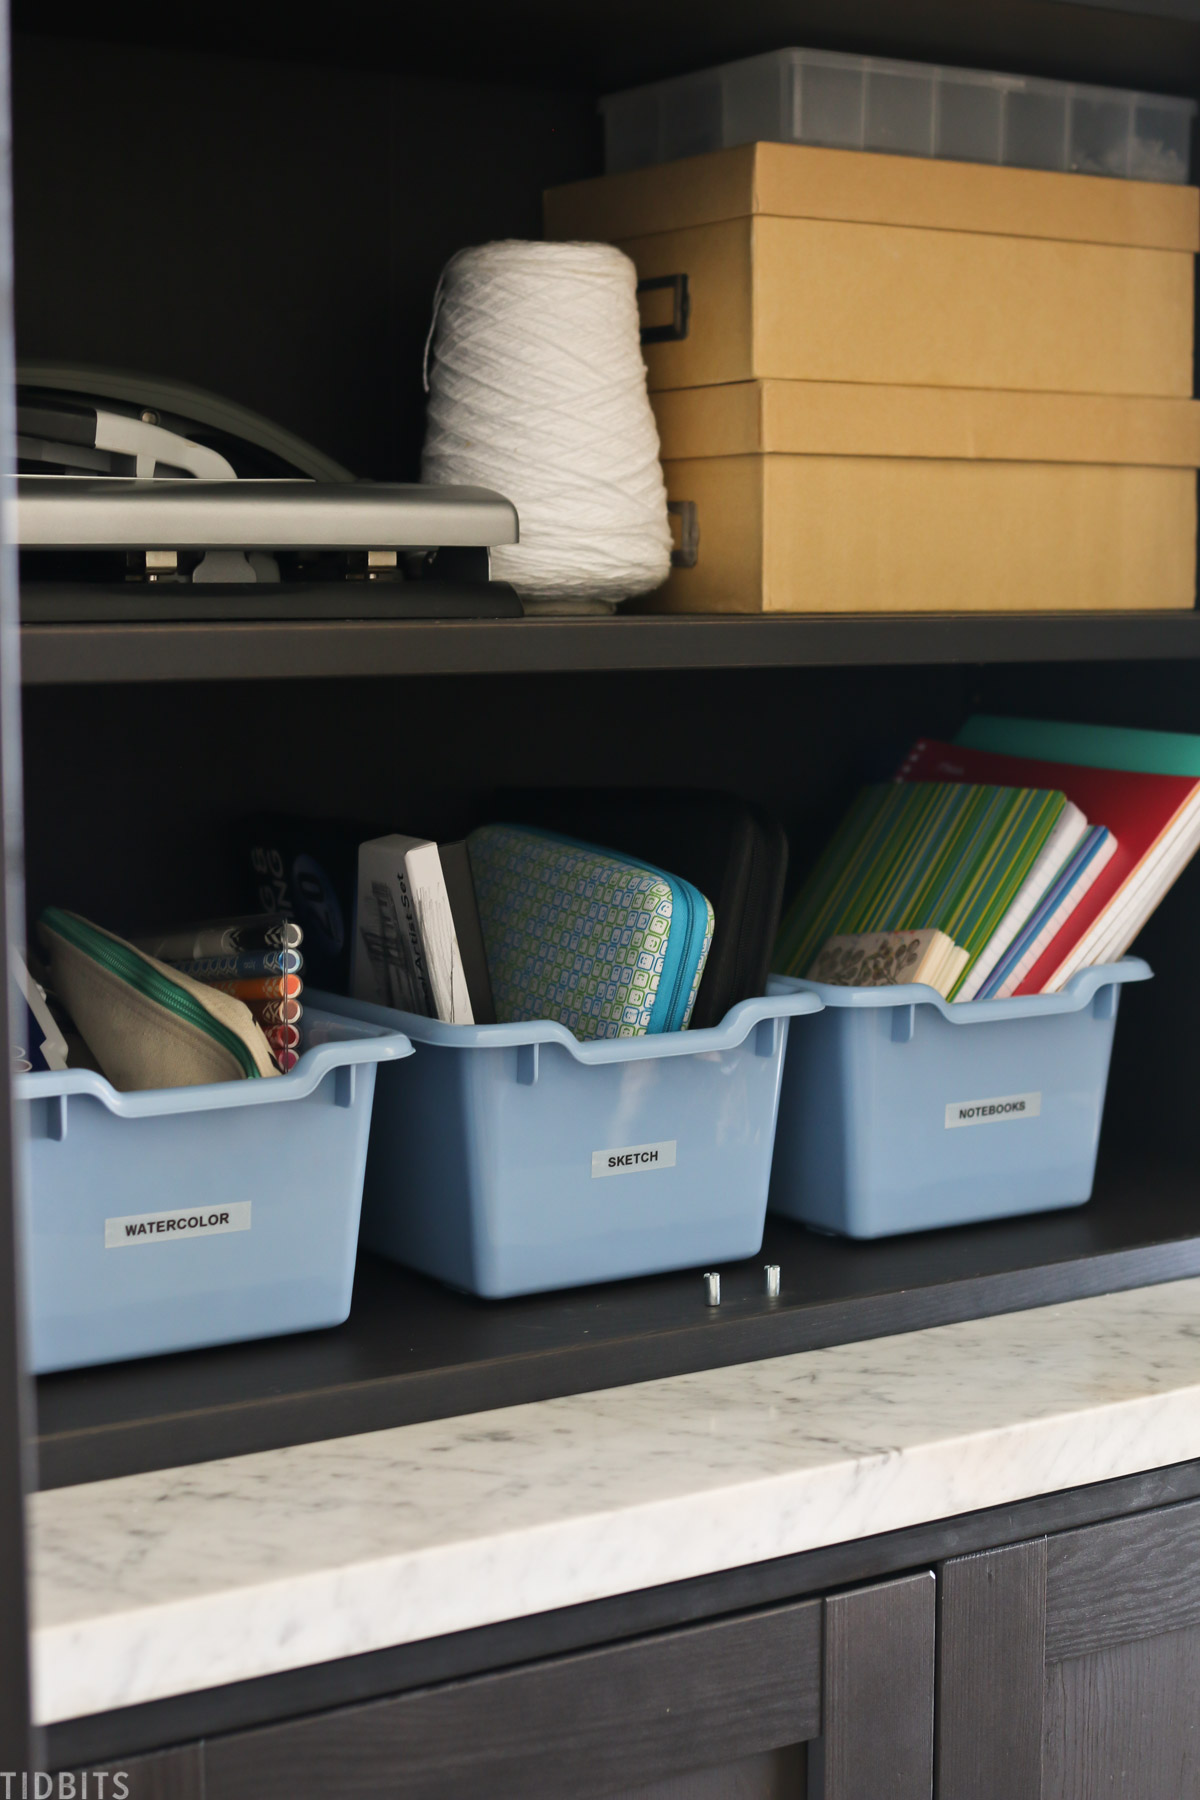 blue storage containers are labeled with homeschool supplies